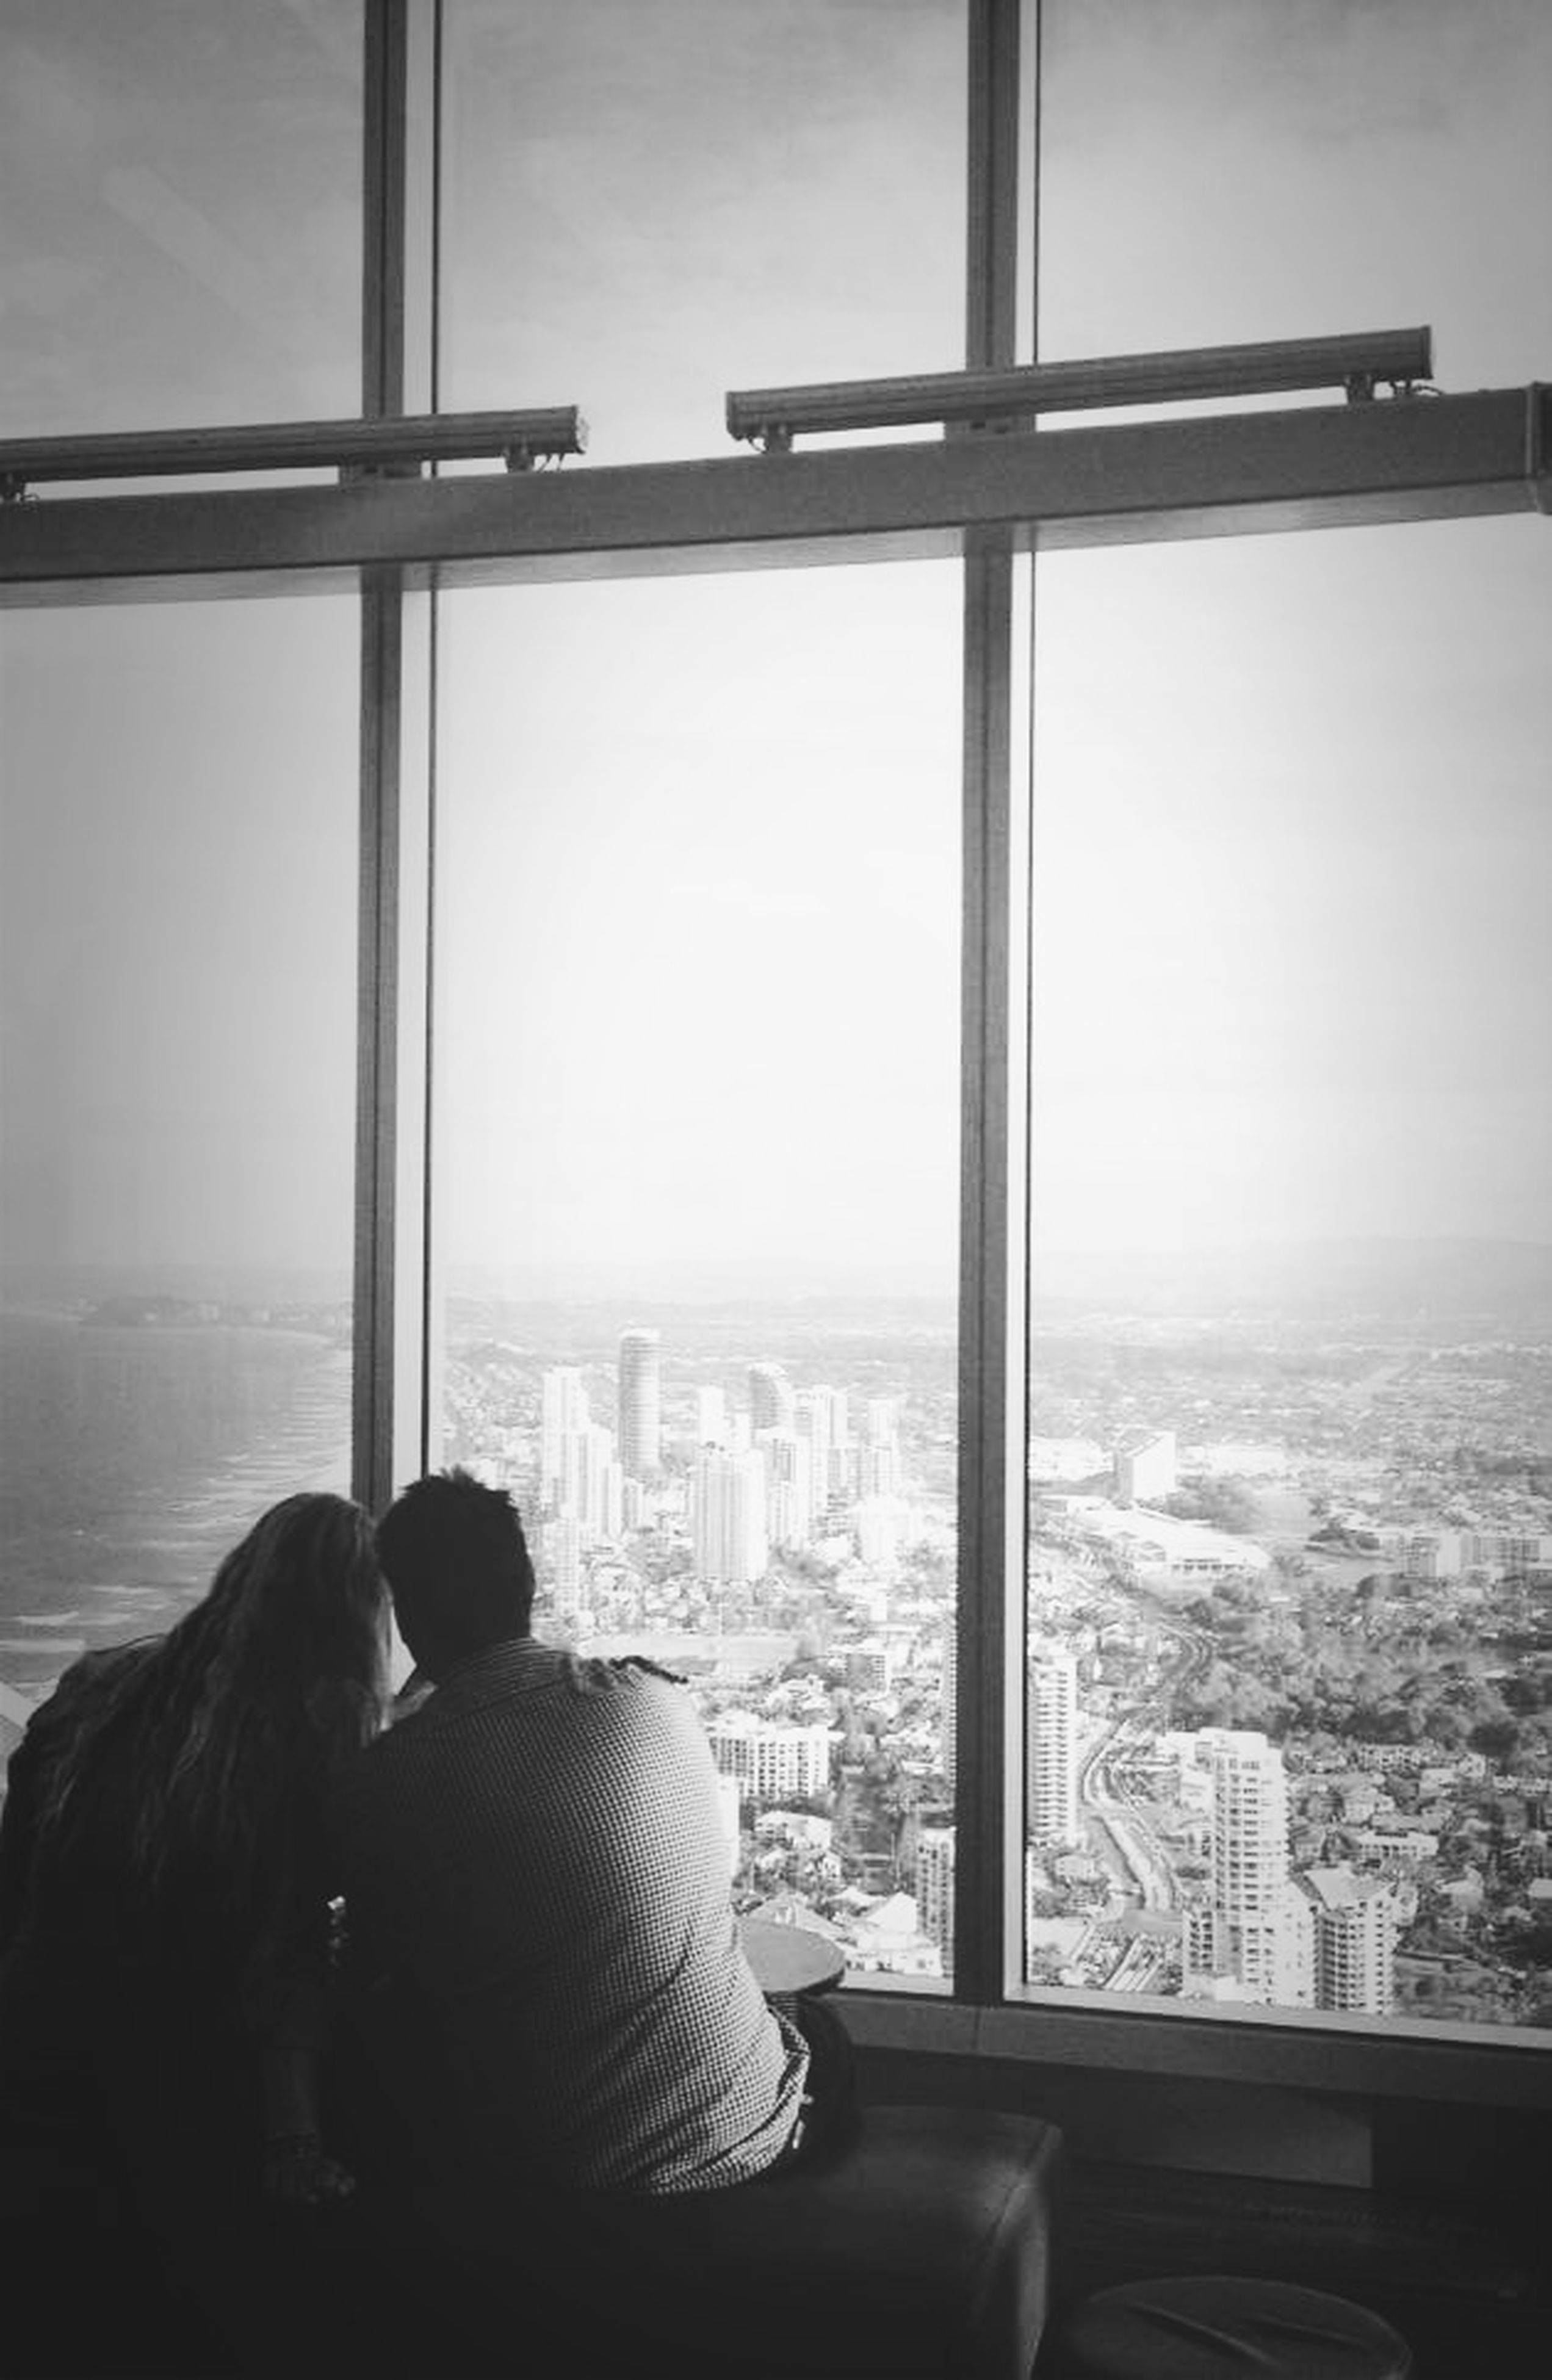 city, cityscape, architecture, indoors, built structure, window, glass - material, building exterior, skyscraper, sky, transparent, modern, looking through window, tower, tall - high, city life, capital cities, sunset, rear view, travel destinations